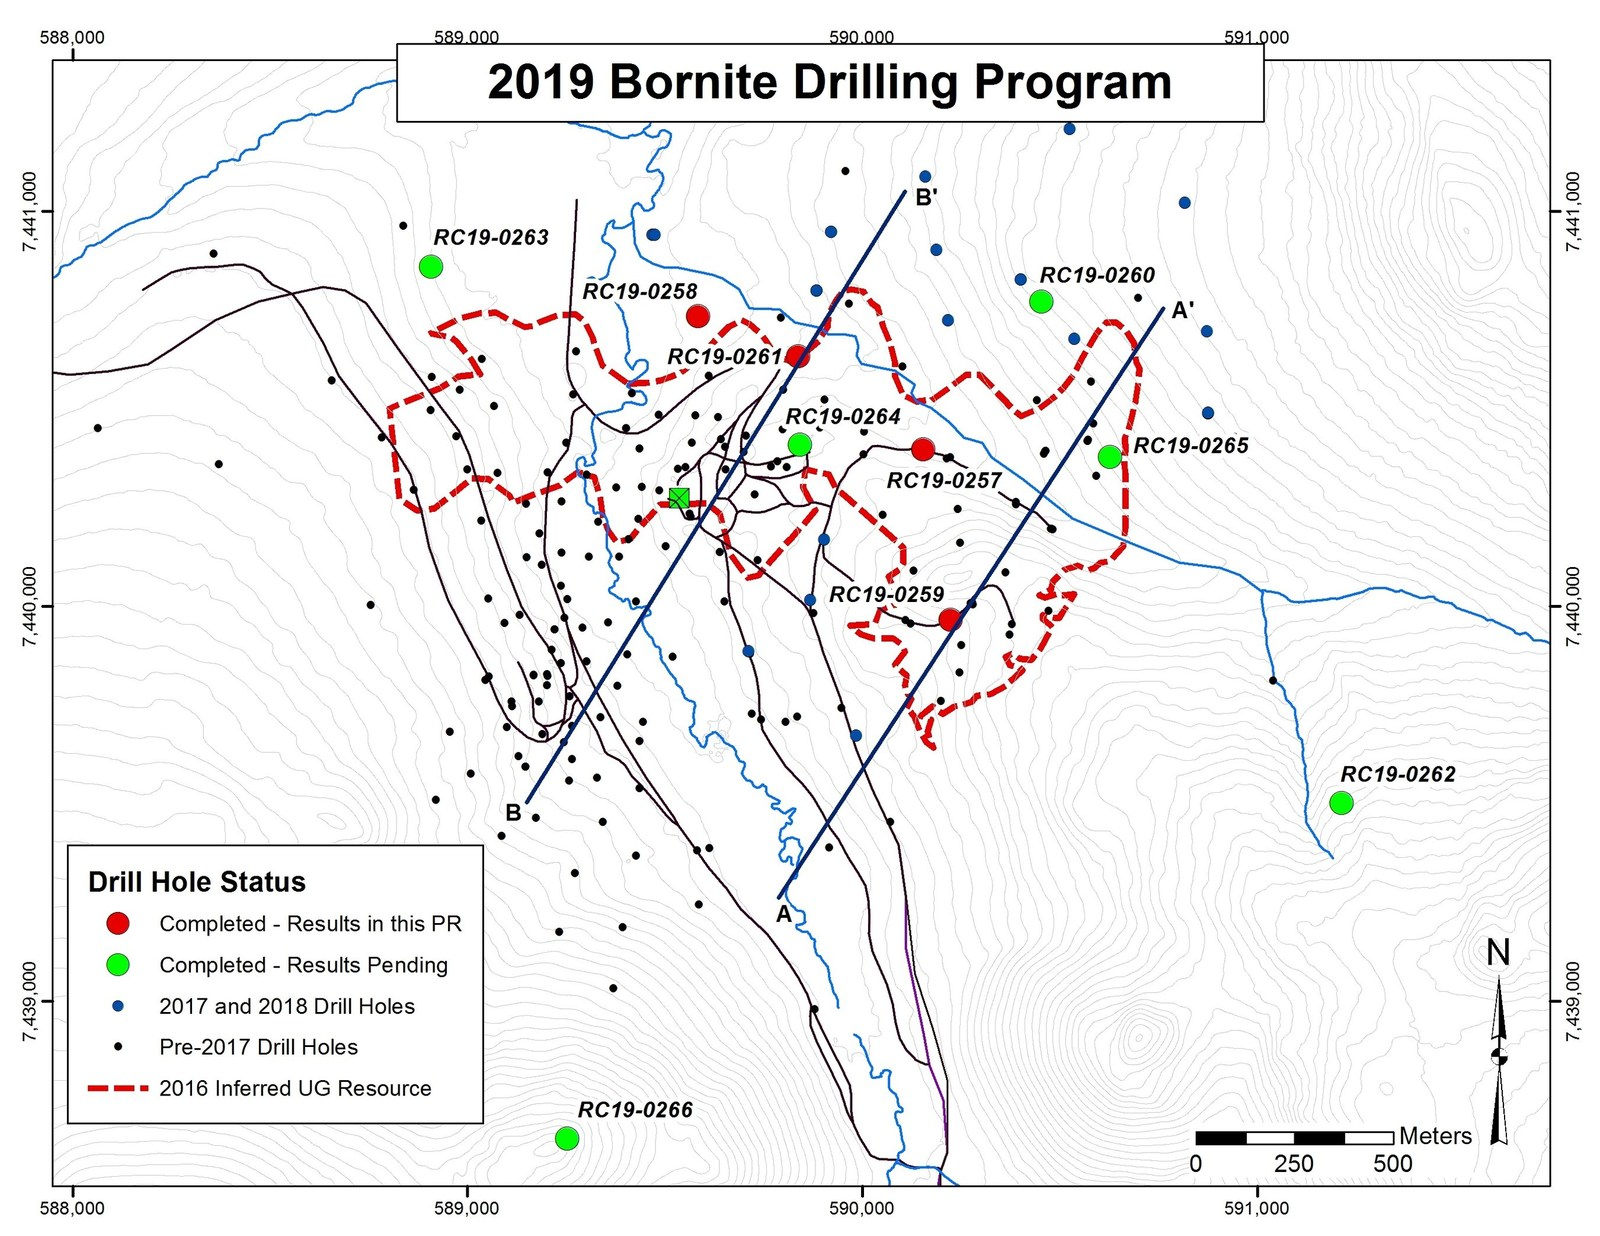 Figure 1- Map Showing Location of 2019 Drilling Program at Bornite